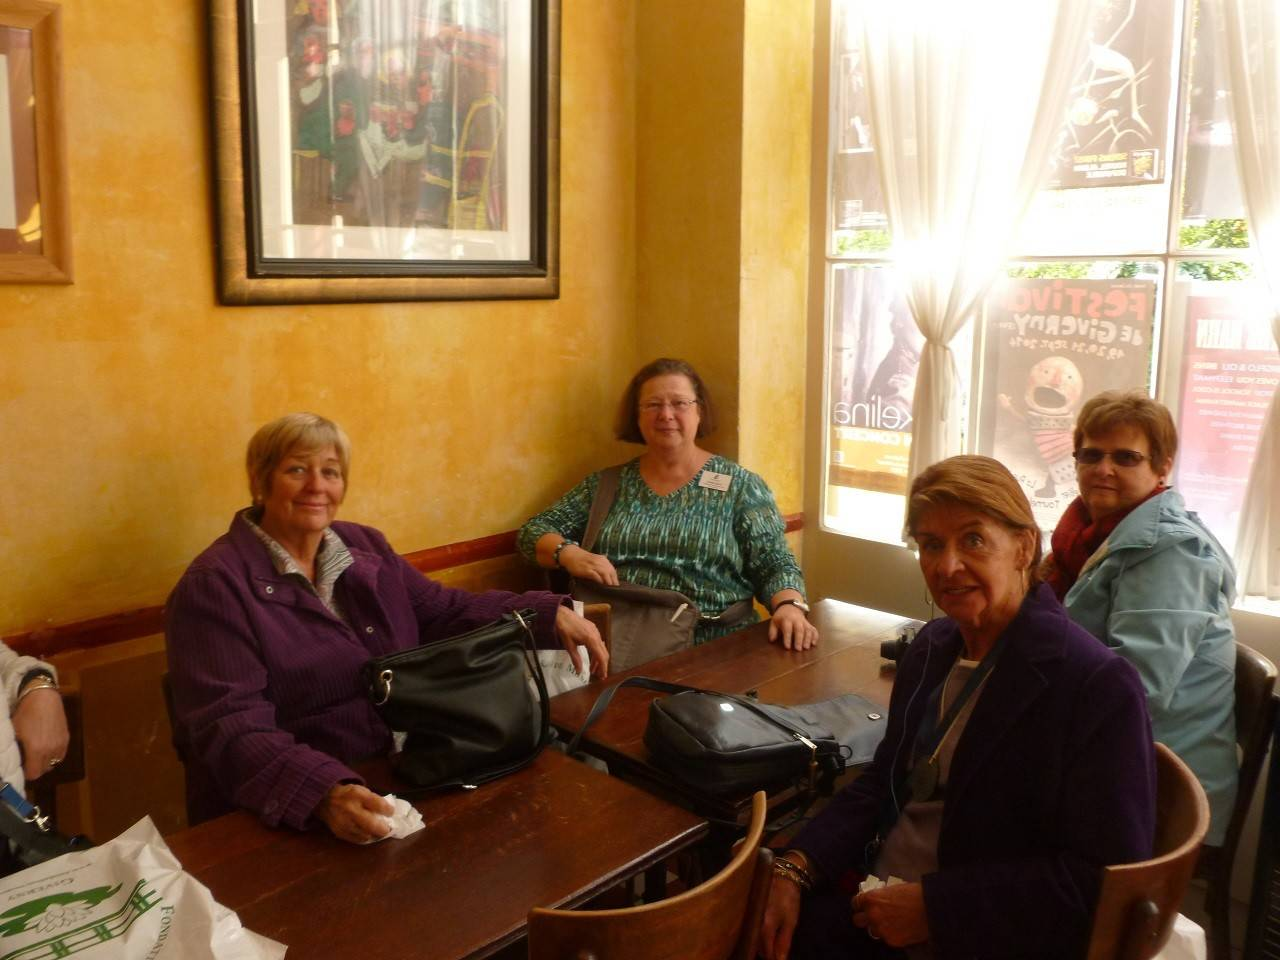 Community Education Travel manager Linda Kerr (center) sits with a few members of a group she led to Paris and Normandy, France. Here they wait for tea in the Hotel Baudy in Giverny, France, a frequent haunt of the artist Claude Monet.